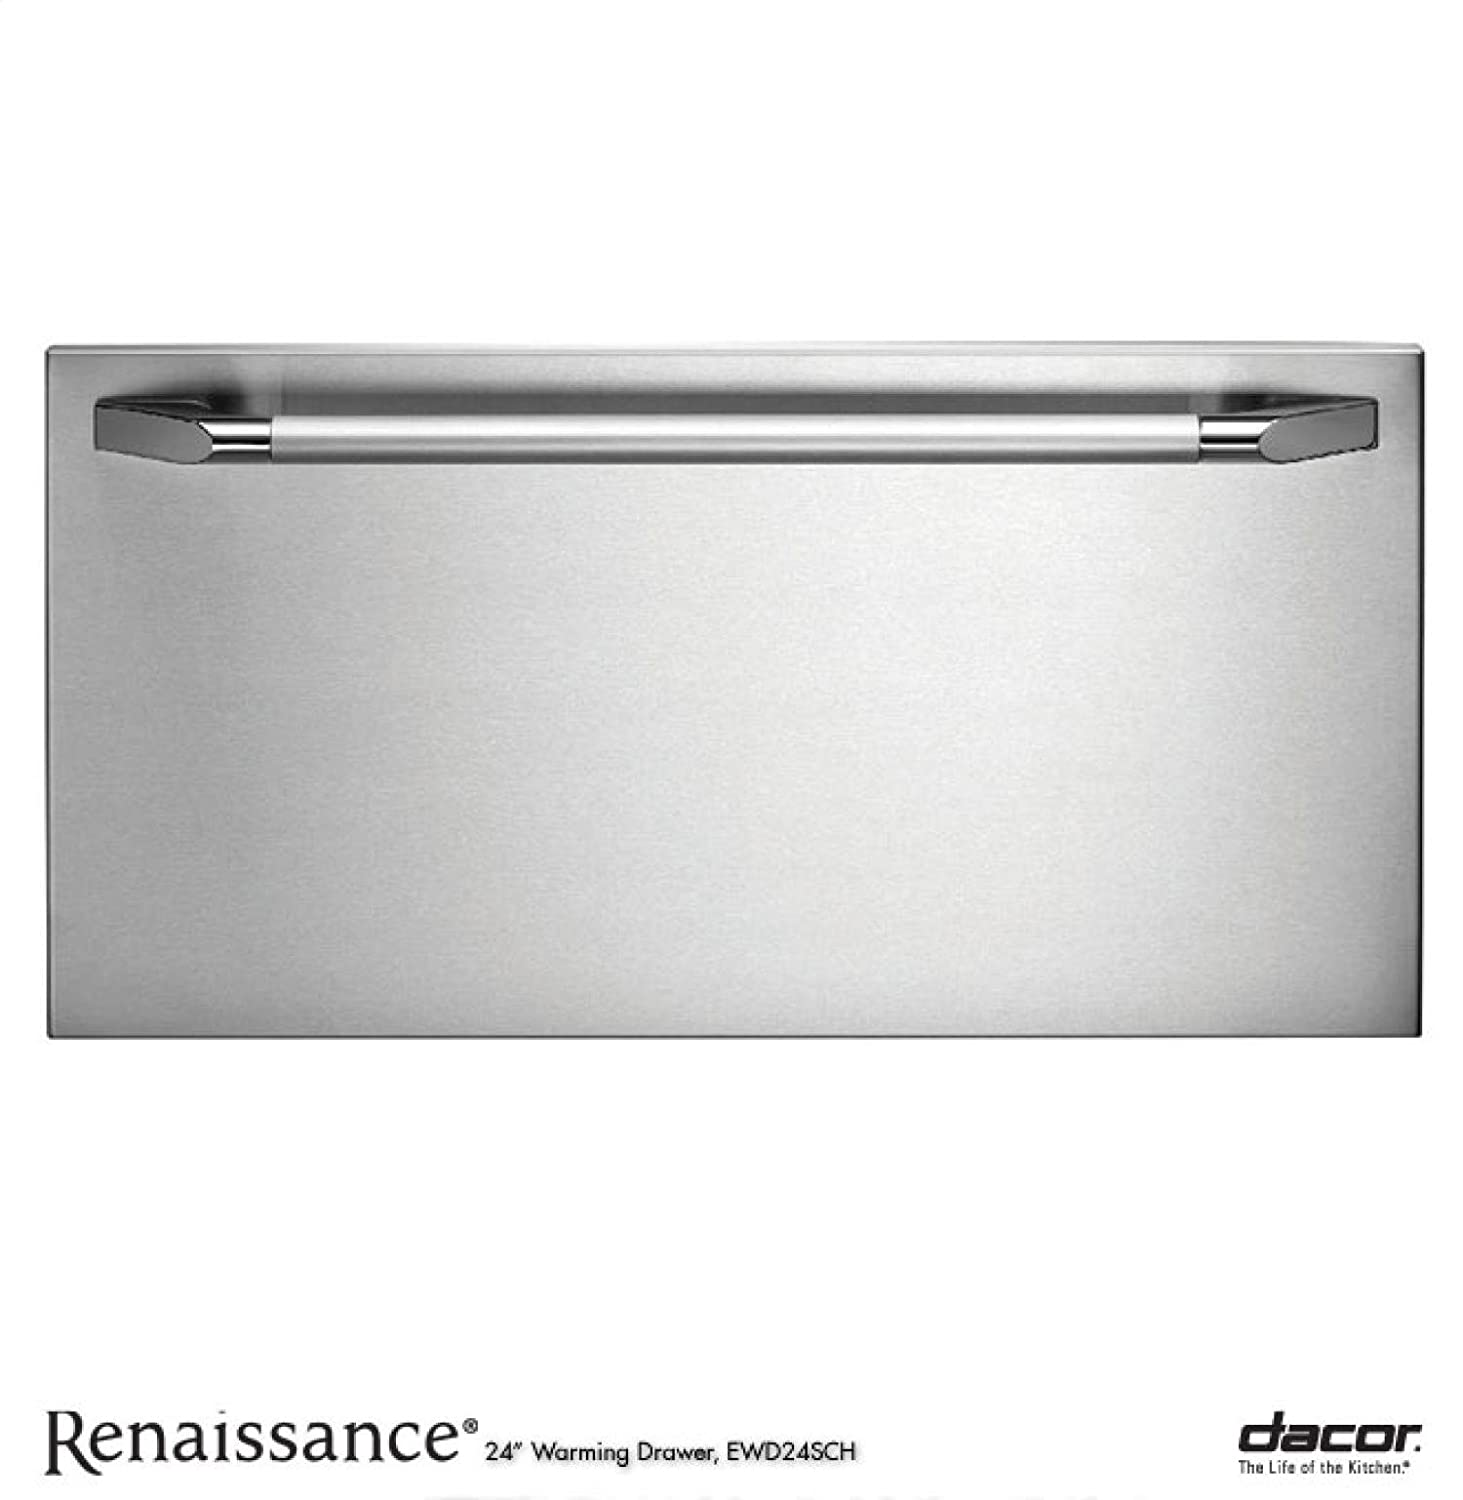 Dacor EWD24SCH Renaissance 24' Epicure Warming Drawer with 500 Watt Heating Element 4 Timer Settings Plus Infinite Mode and Blue LED Light Indicator: Stainless Steel with Chrome